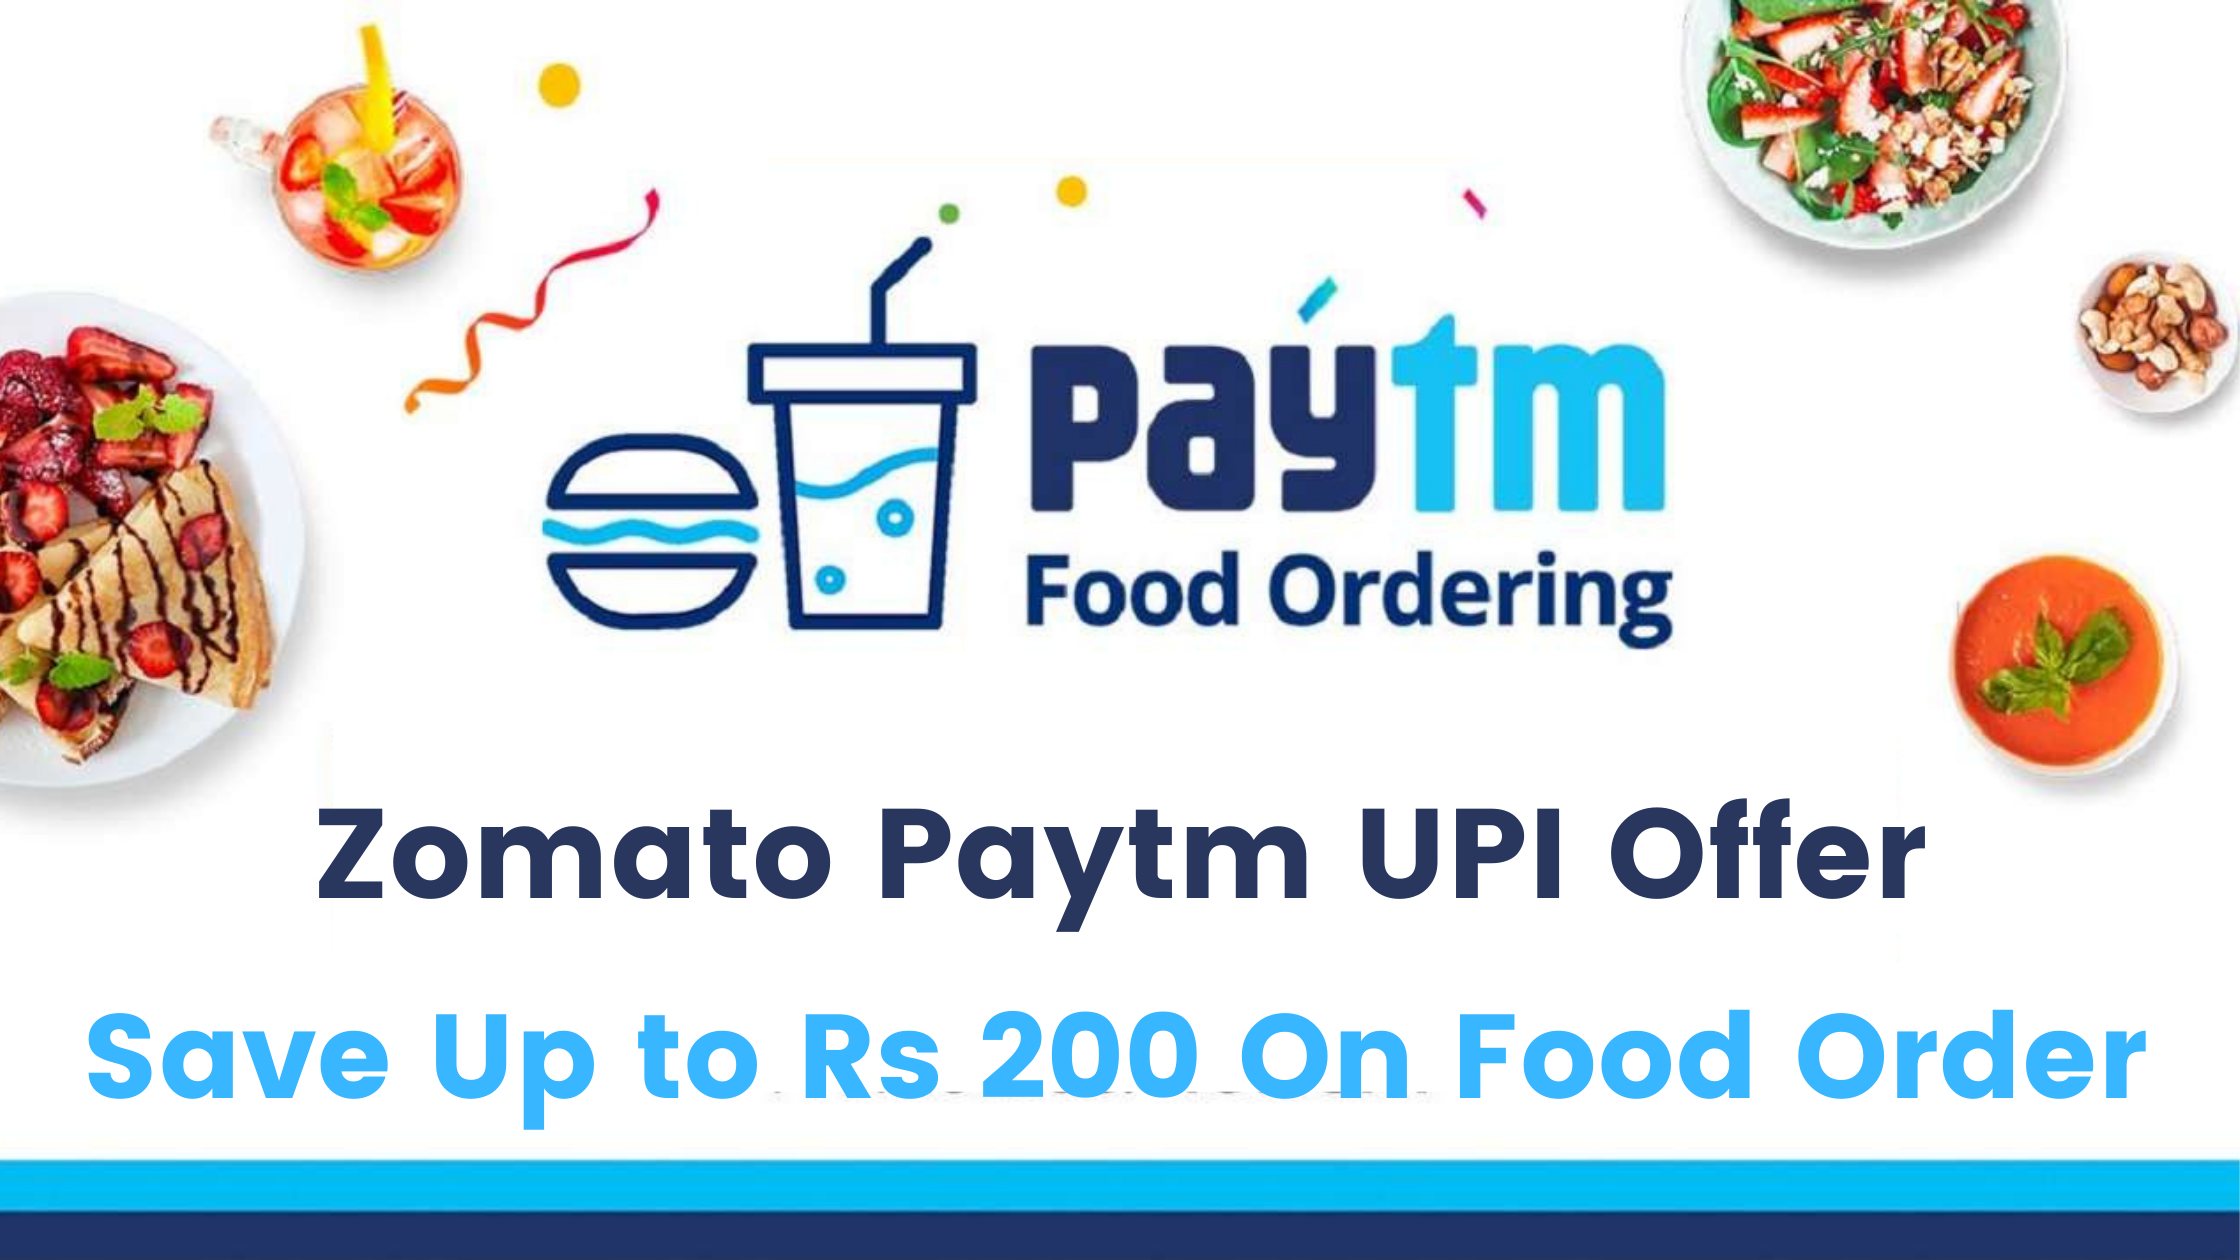 Zomato PayTM UPI Offer – Save Up to Rs 200 On Food Order